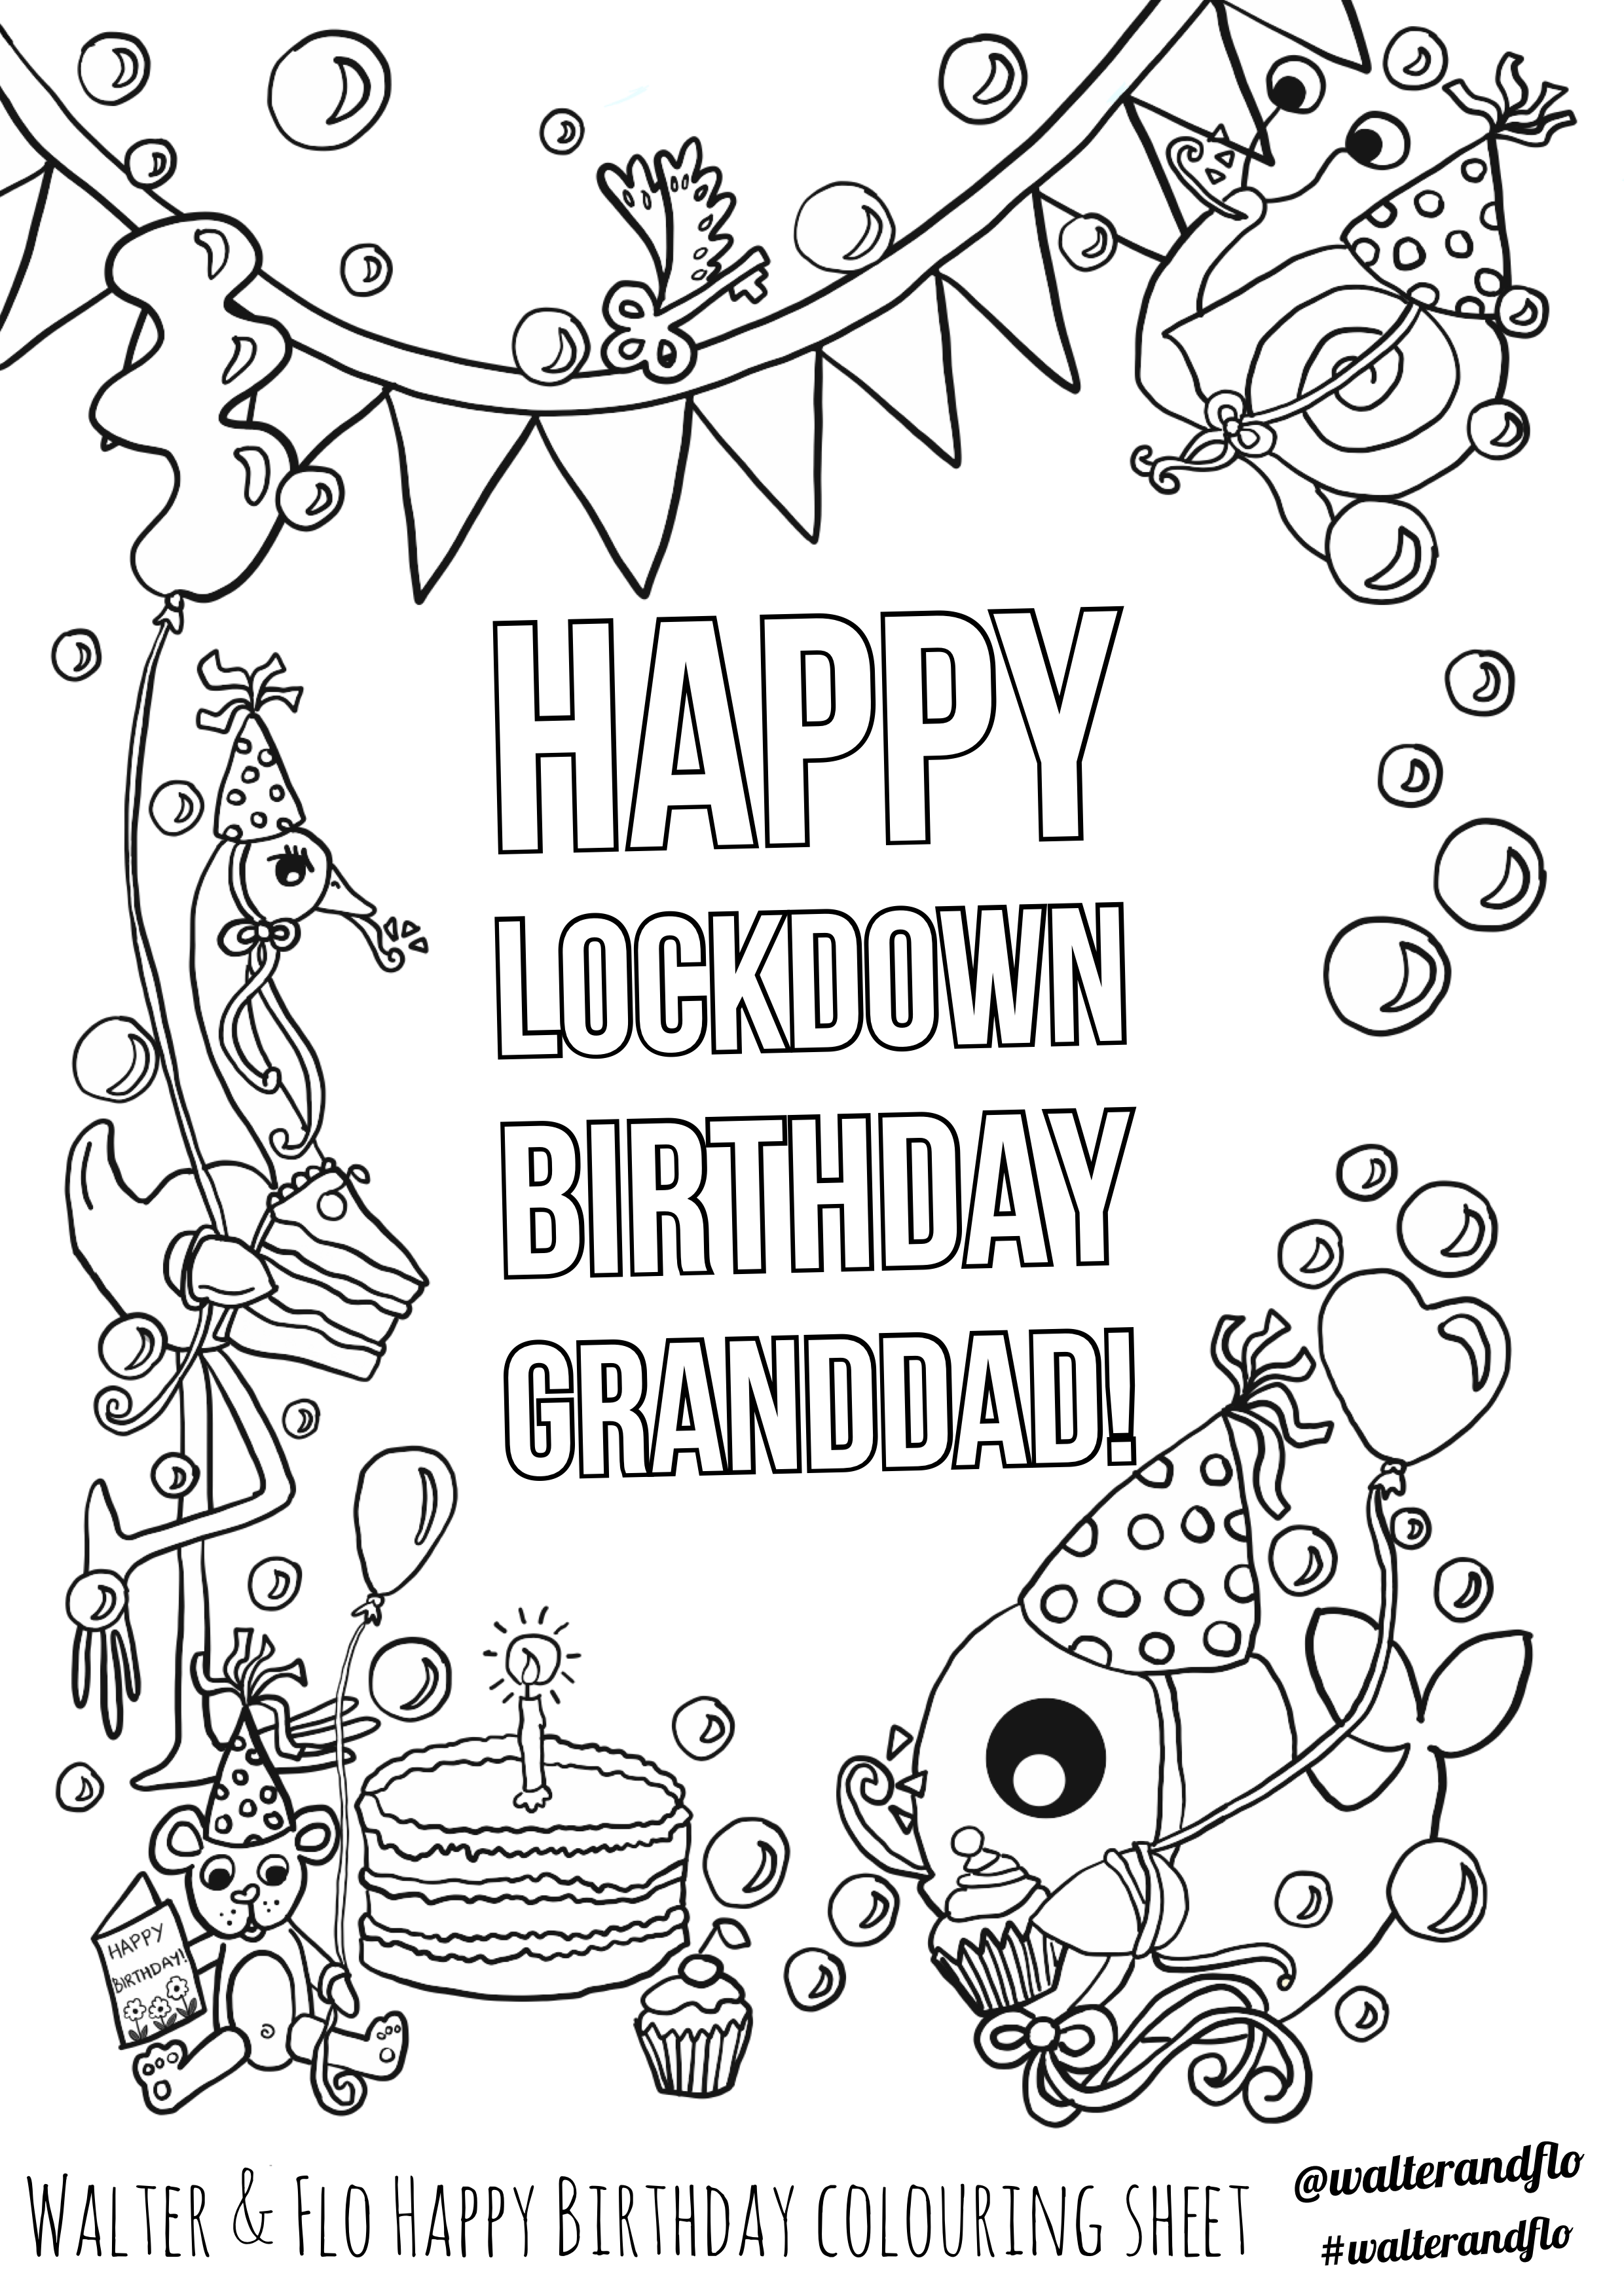 Happy birthday granddad colouring page ...pinterest.co.uk